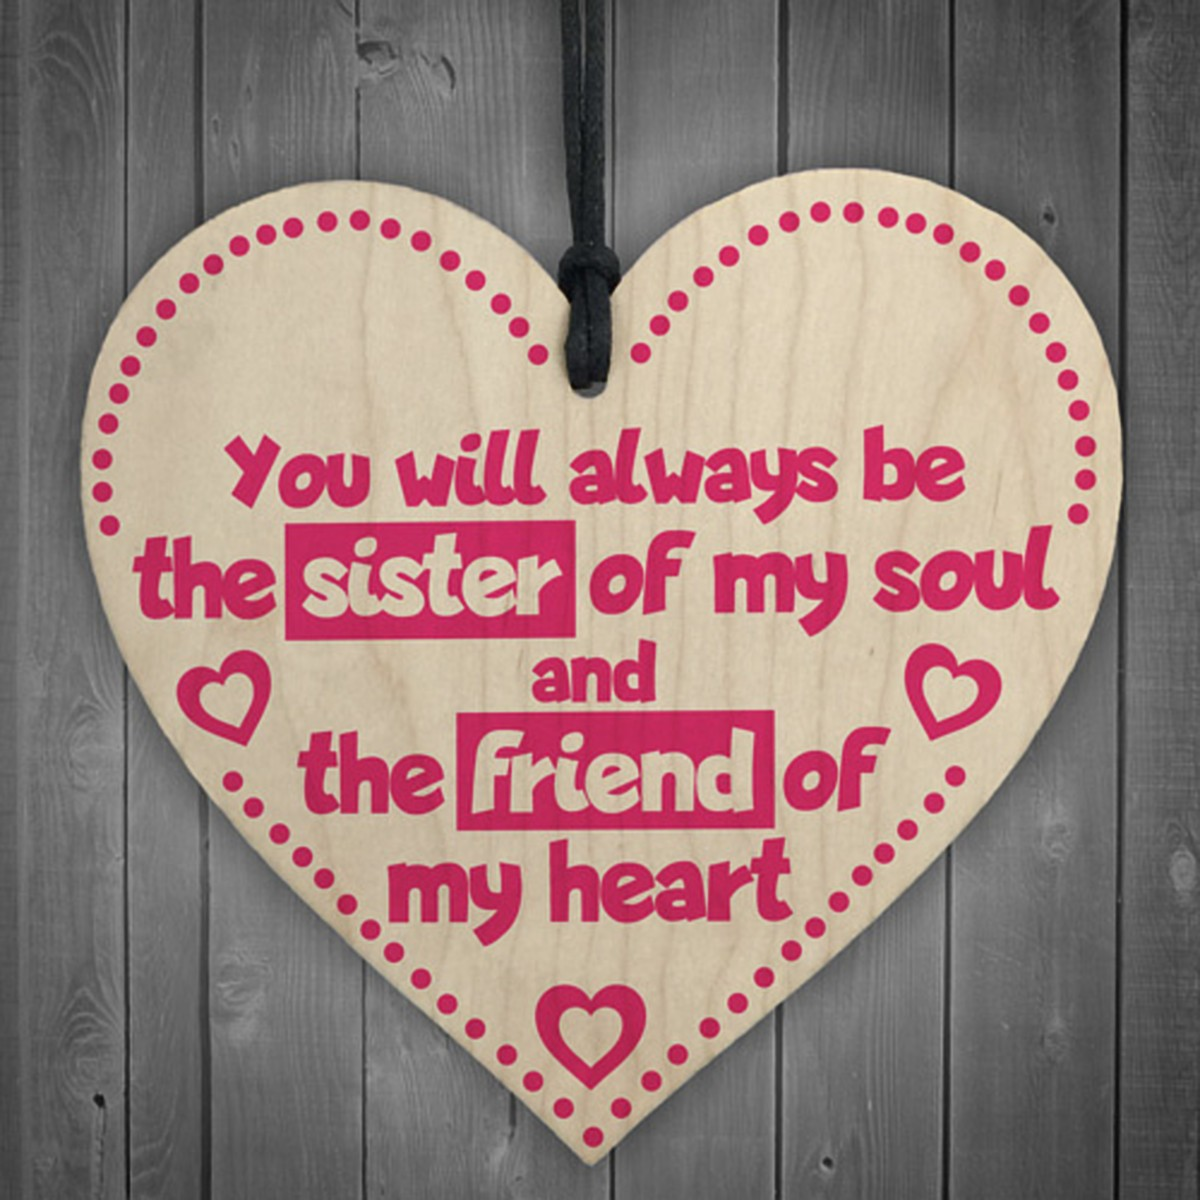 Sisters dating quotes 2021 best brothers (!) 2021 Touching